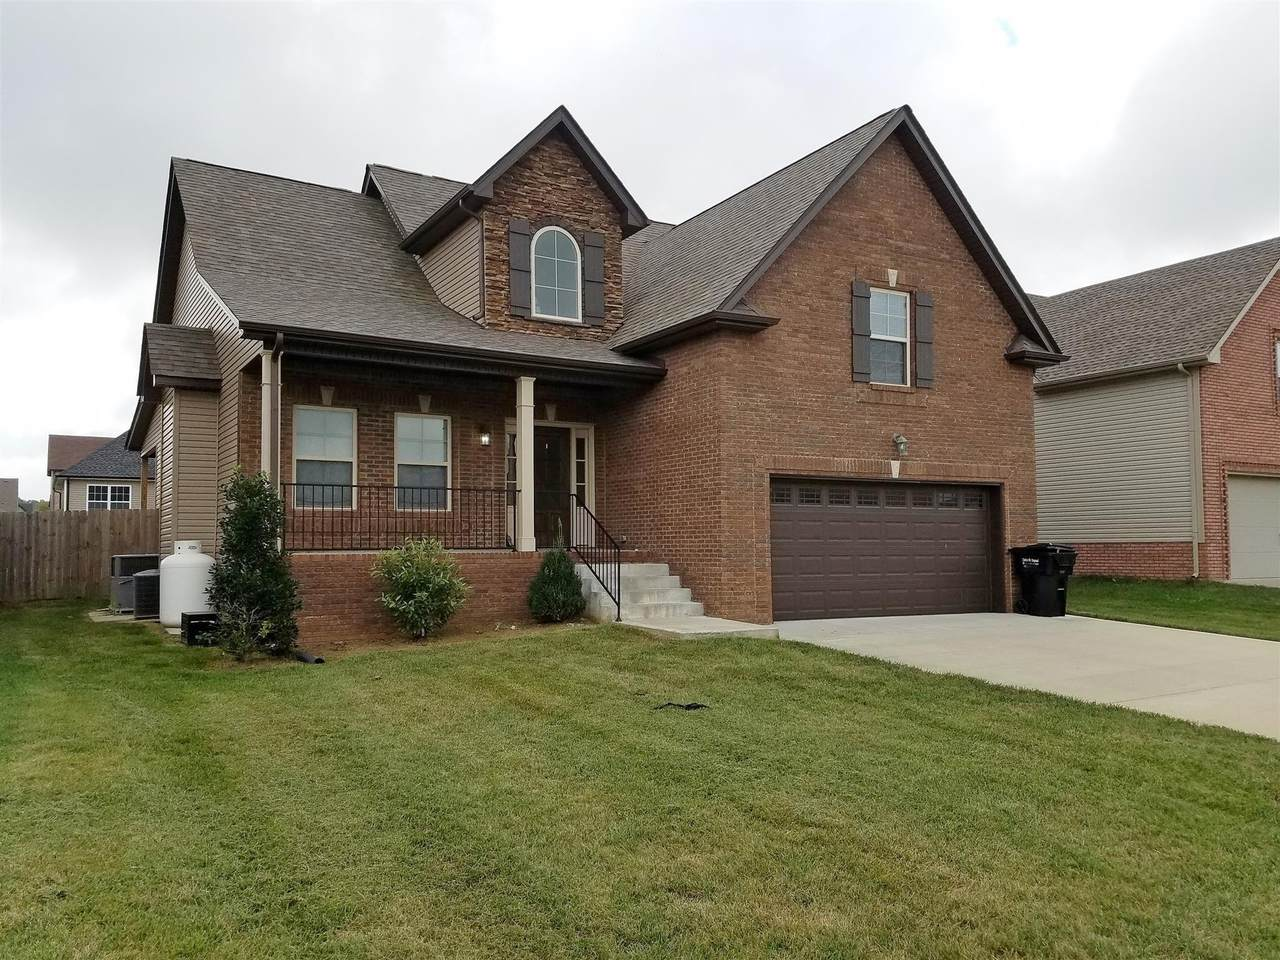 3715 Windhaven Ct - Photo 1